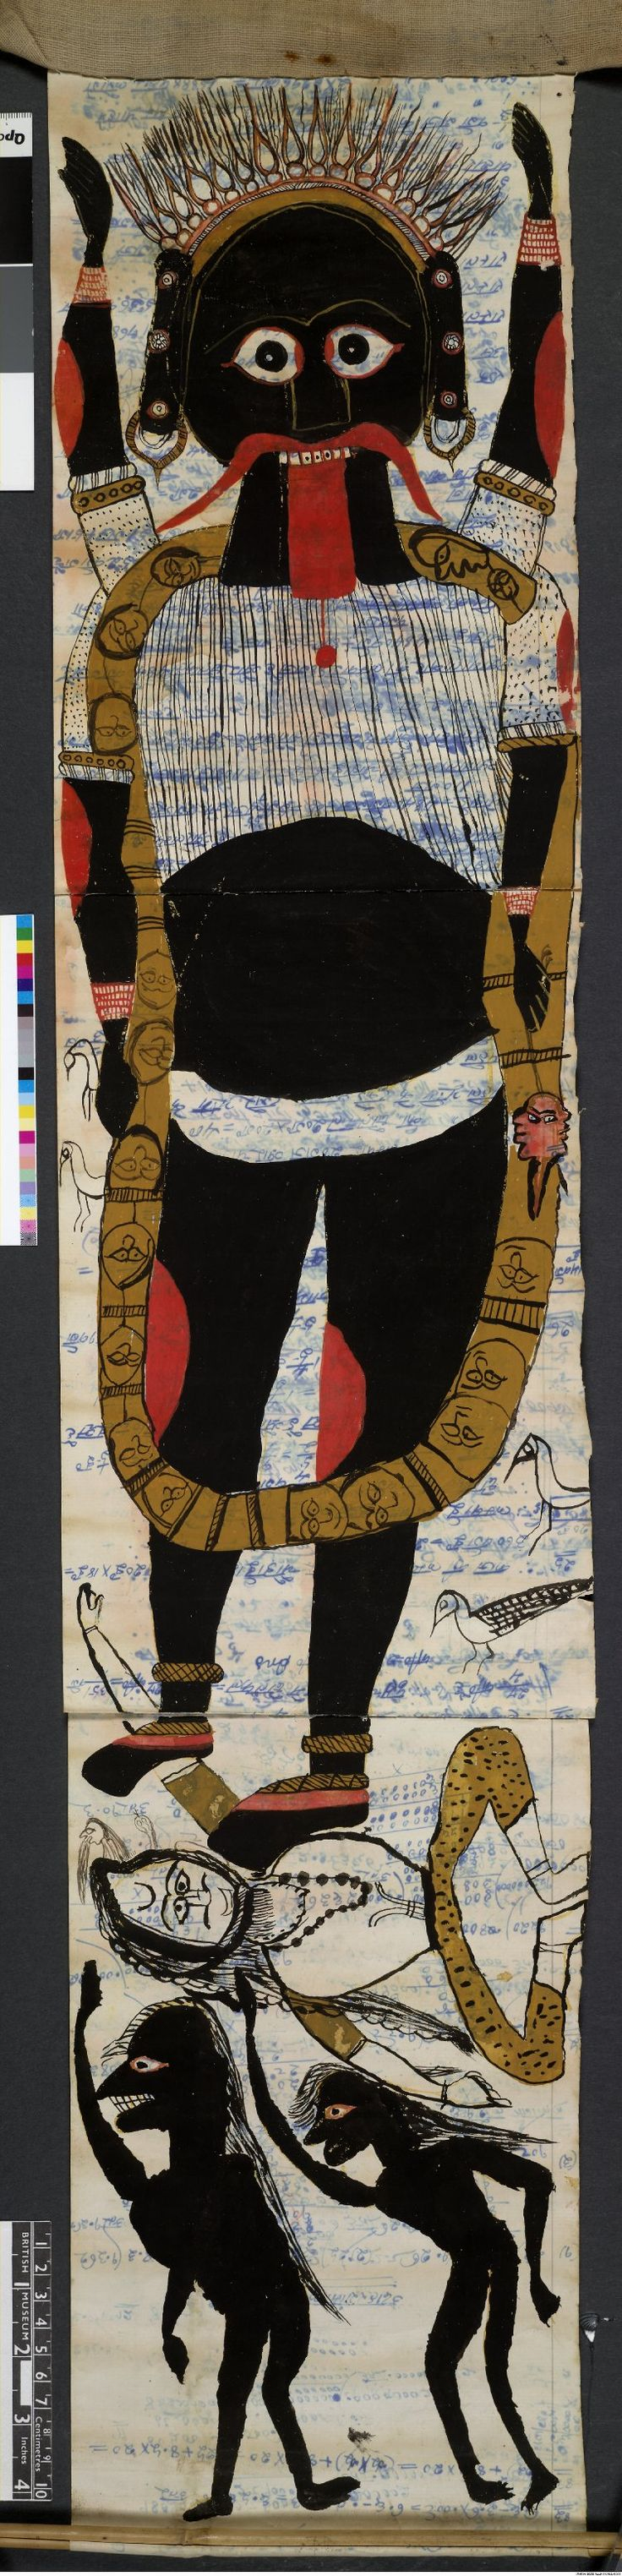 Pata, scroll. General subject - deity, dance, figure. 1 register;Kali dancing on Siva;ghoulish figures below. Painted in water-colour on paper (re-used).